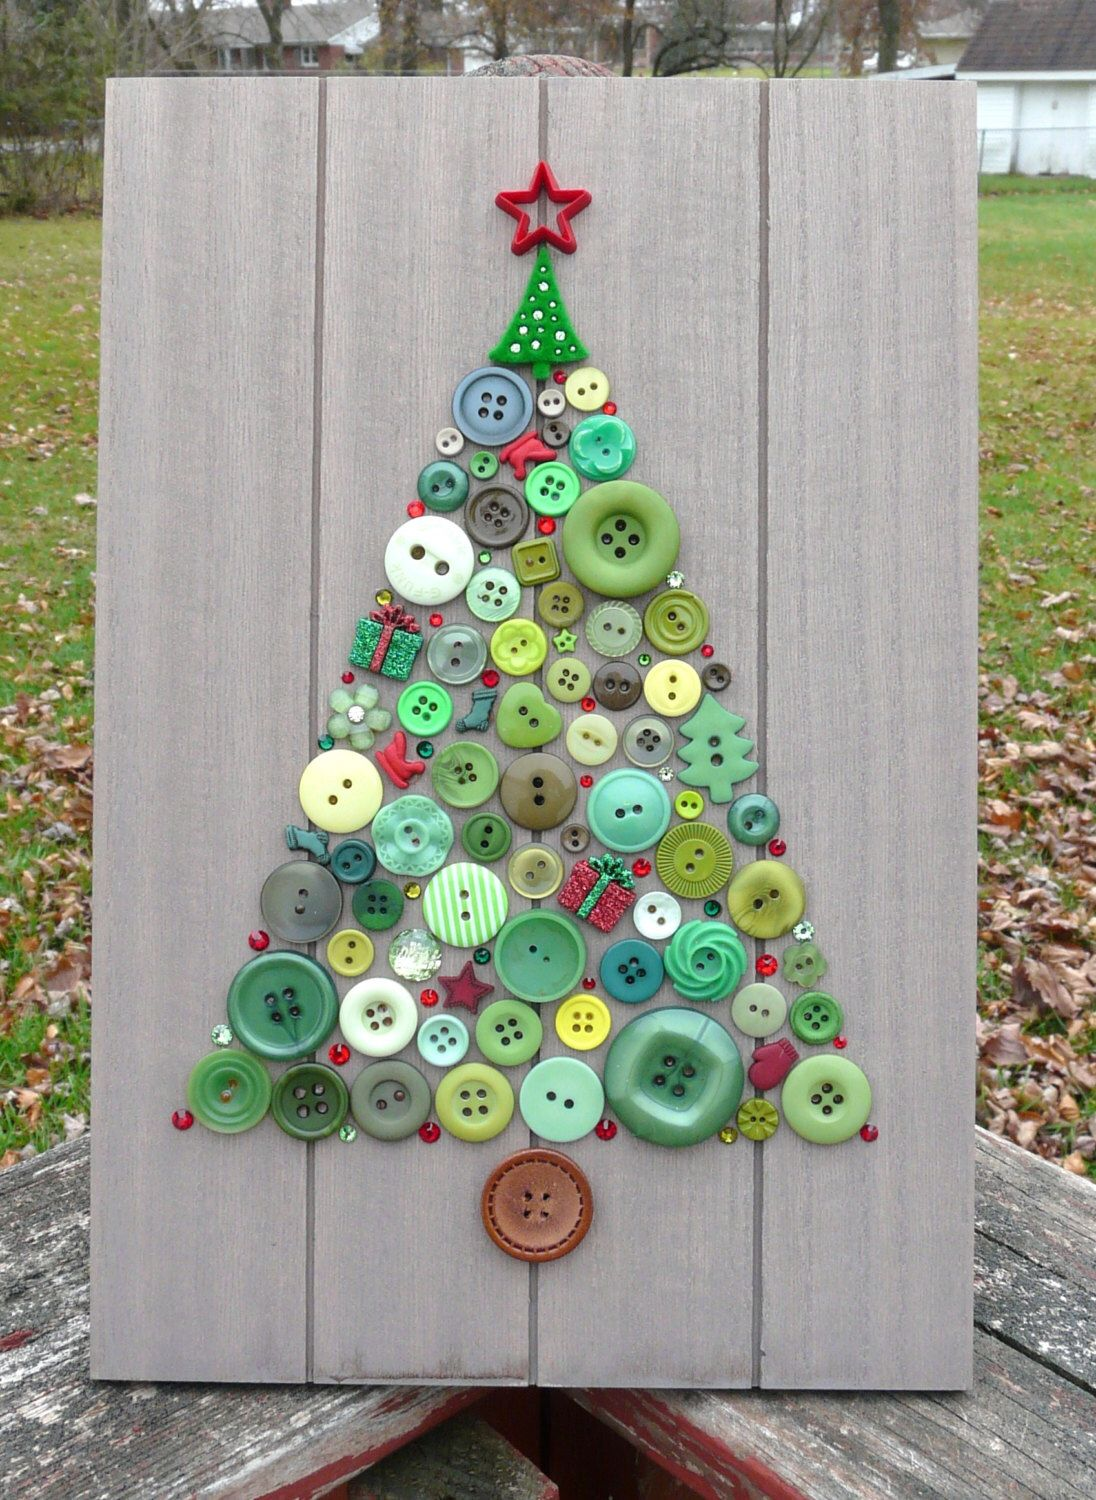 Holiday Tree Christmas Tree Button Art With Swarovski Crystals On 8 X12 Menu Board Winter Decor By Barefootancrazy On Button Crafts Button Art Crafts